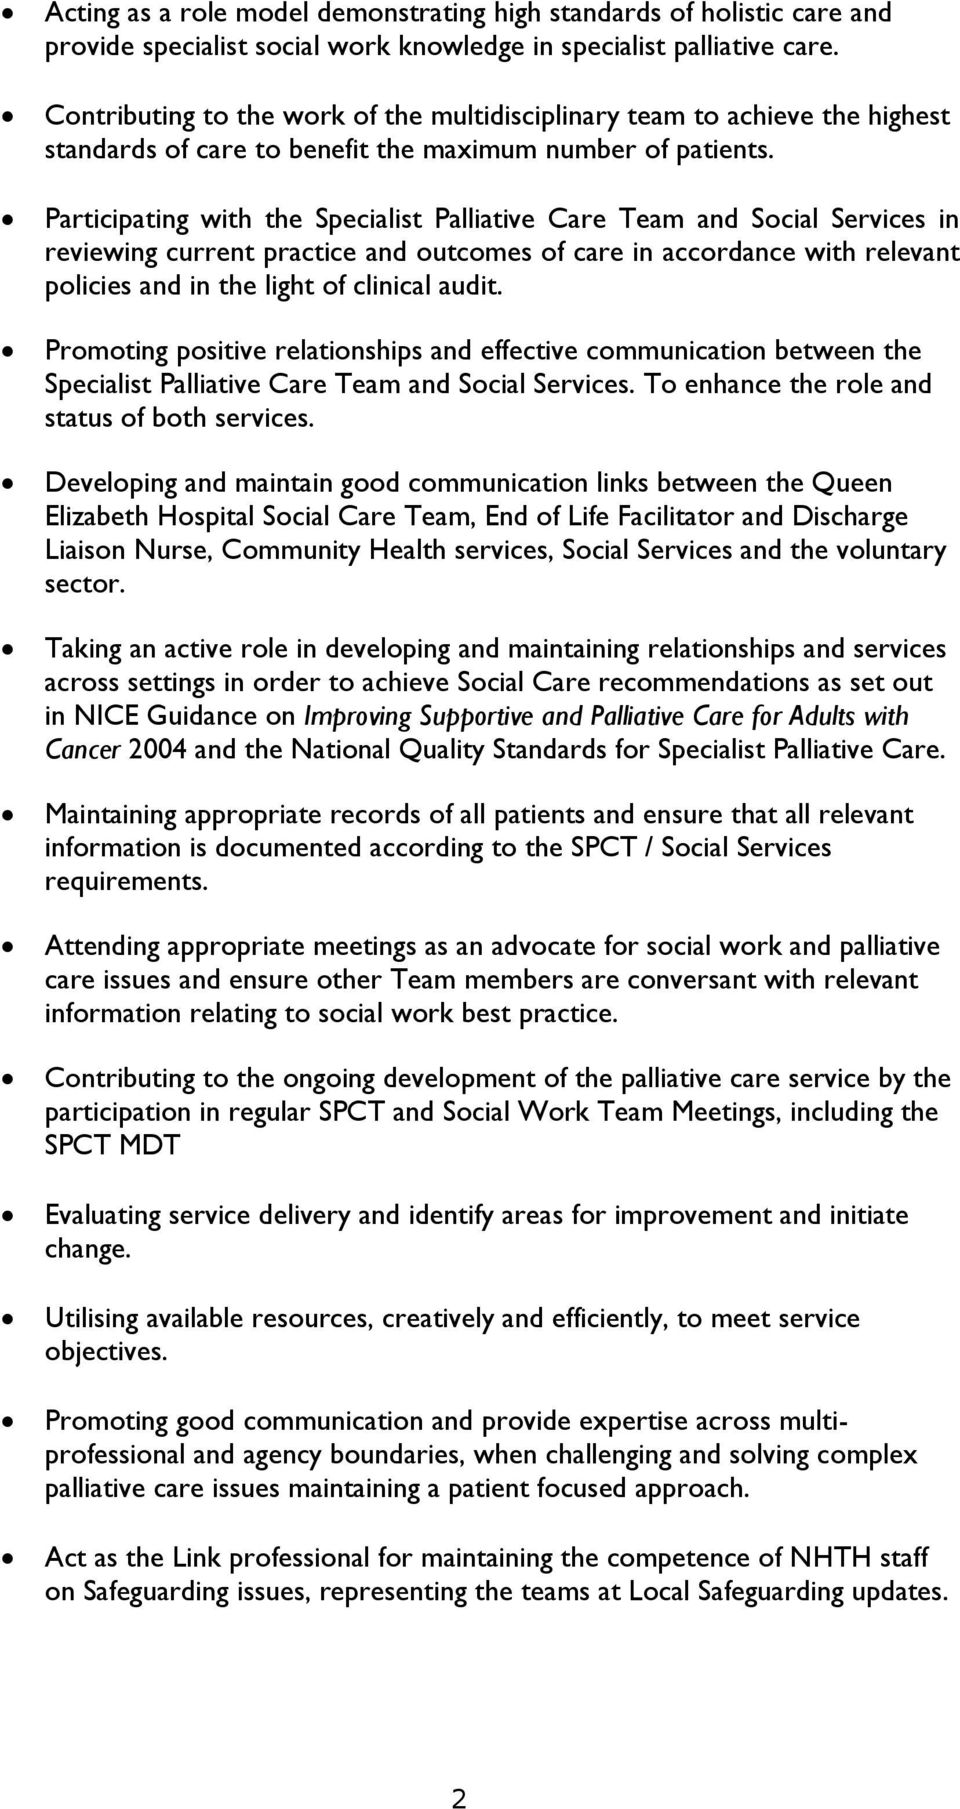 Participating with the Specialist Palliative Care Team and Social Services in reviewing current practice and outcomes of care in accordance with relevant policies and in the light of clinical audit.